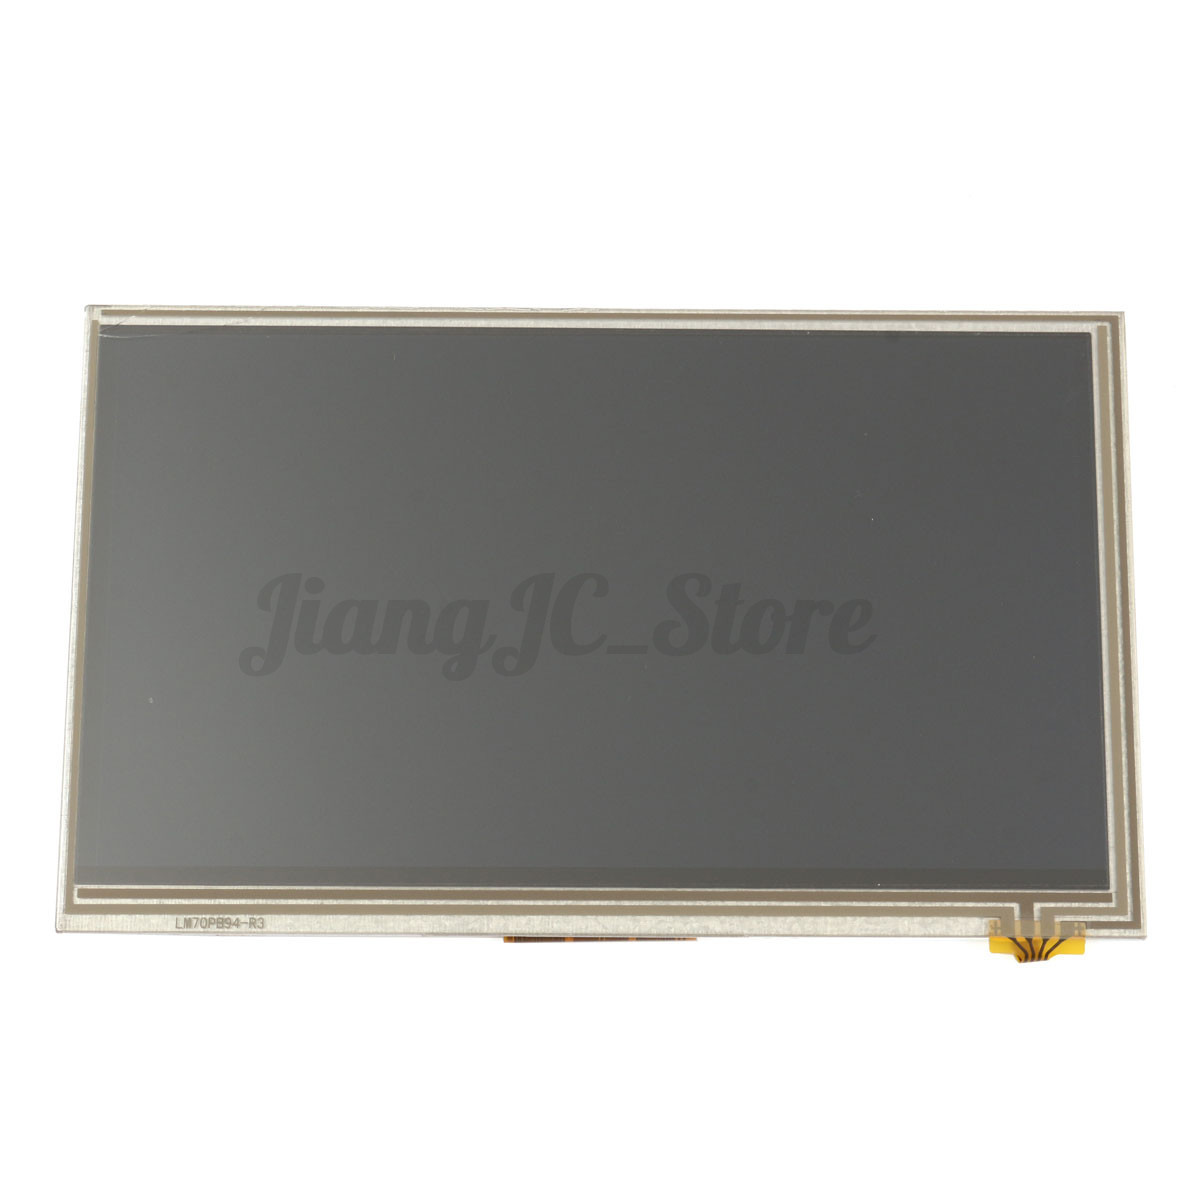 7 Inch Hd Touch Screen Display Lcd 1024x600 Hdmi Module